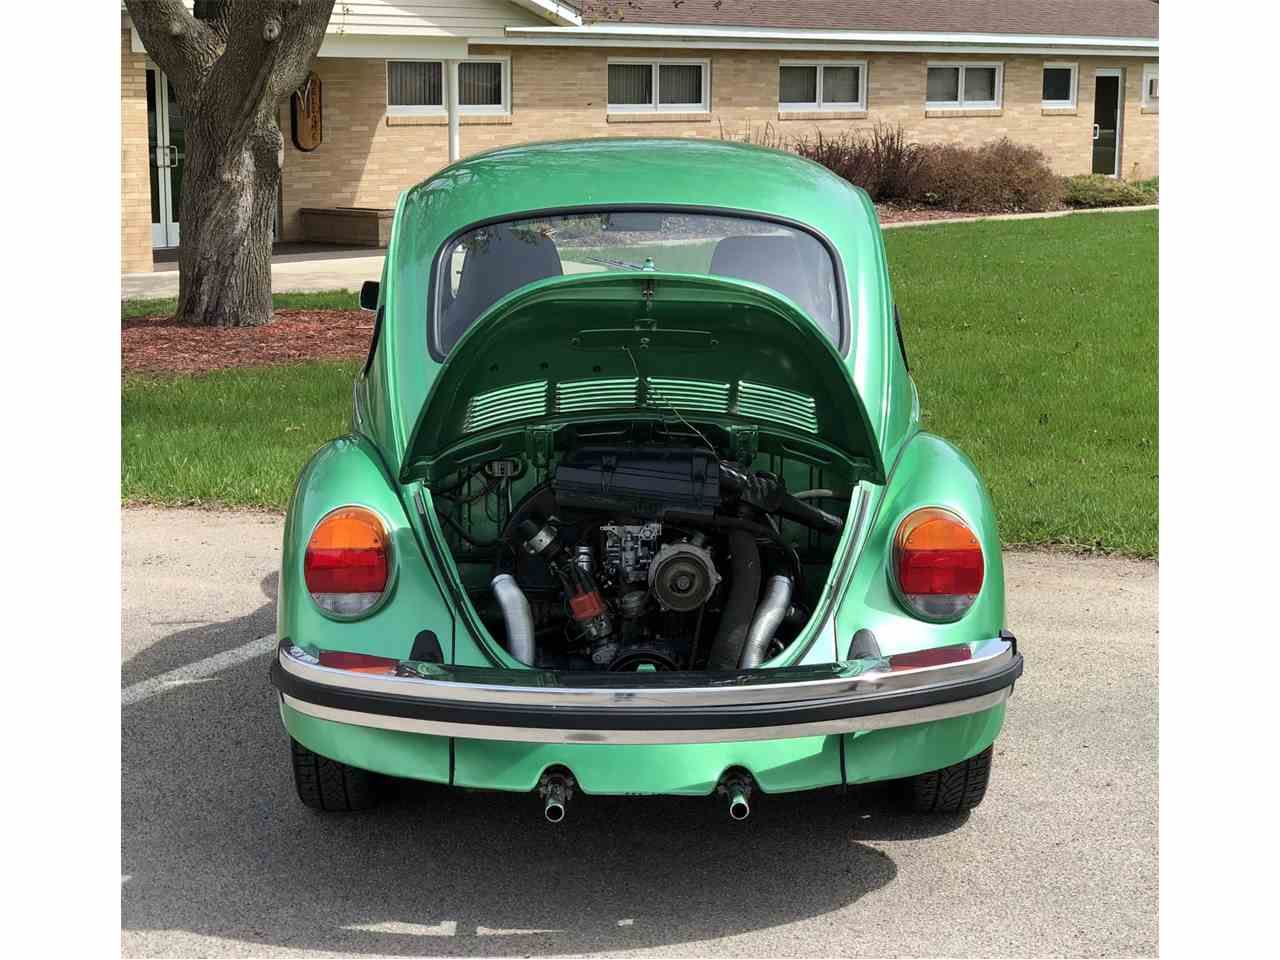 Large Picture of 1974 Volkswagen Beetle located in Maple Lake Minnesota - $9,950.00 - NESE